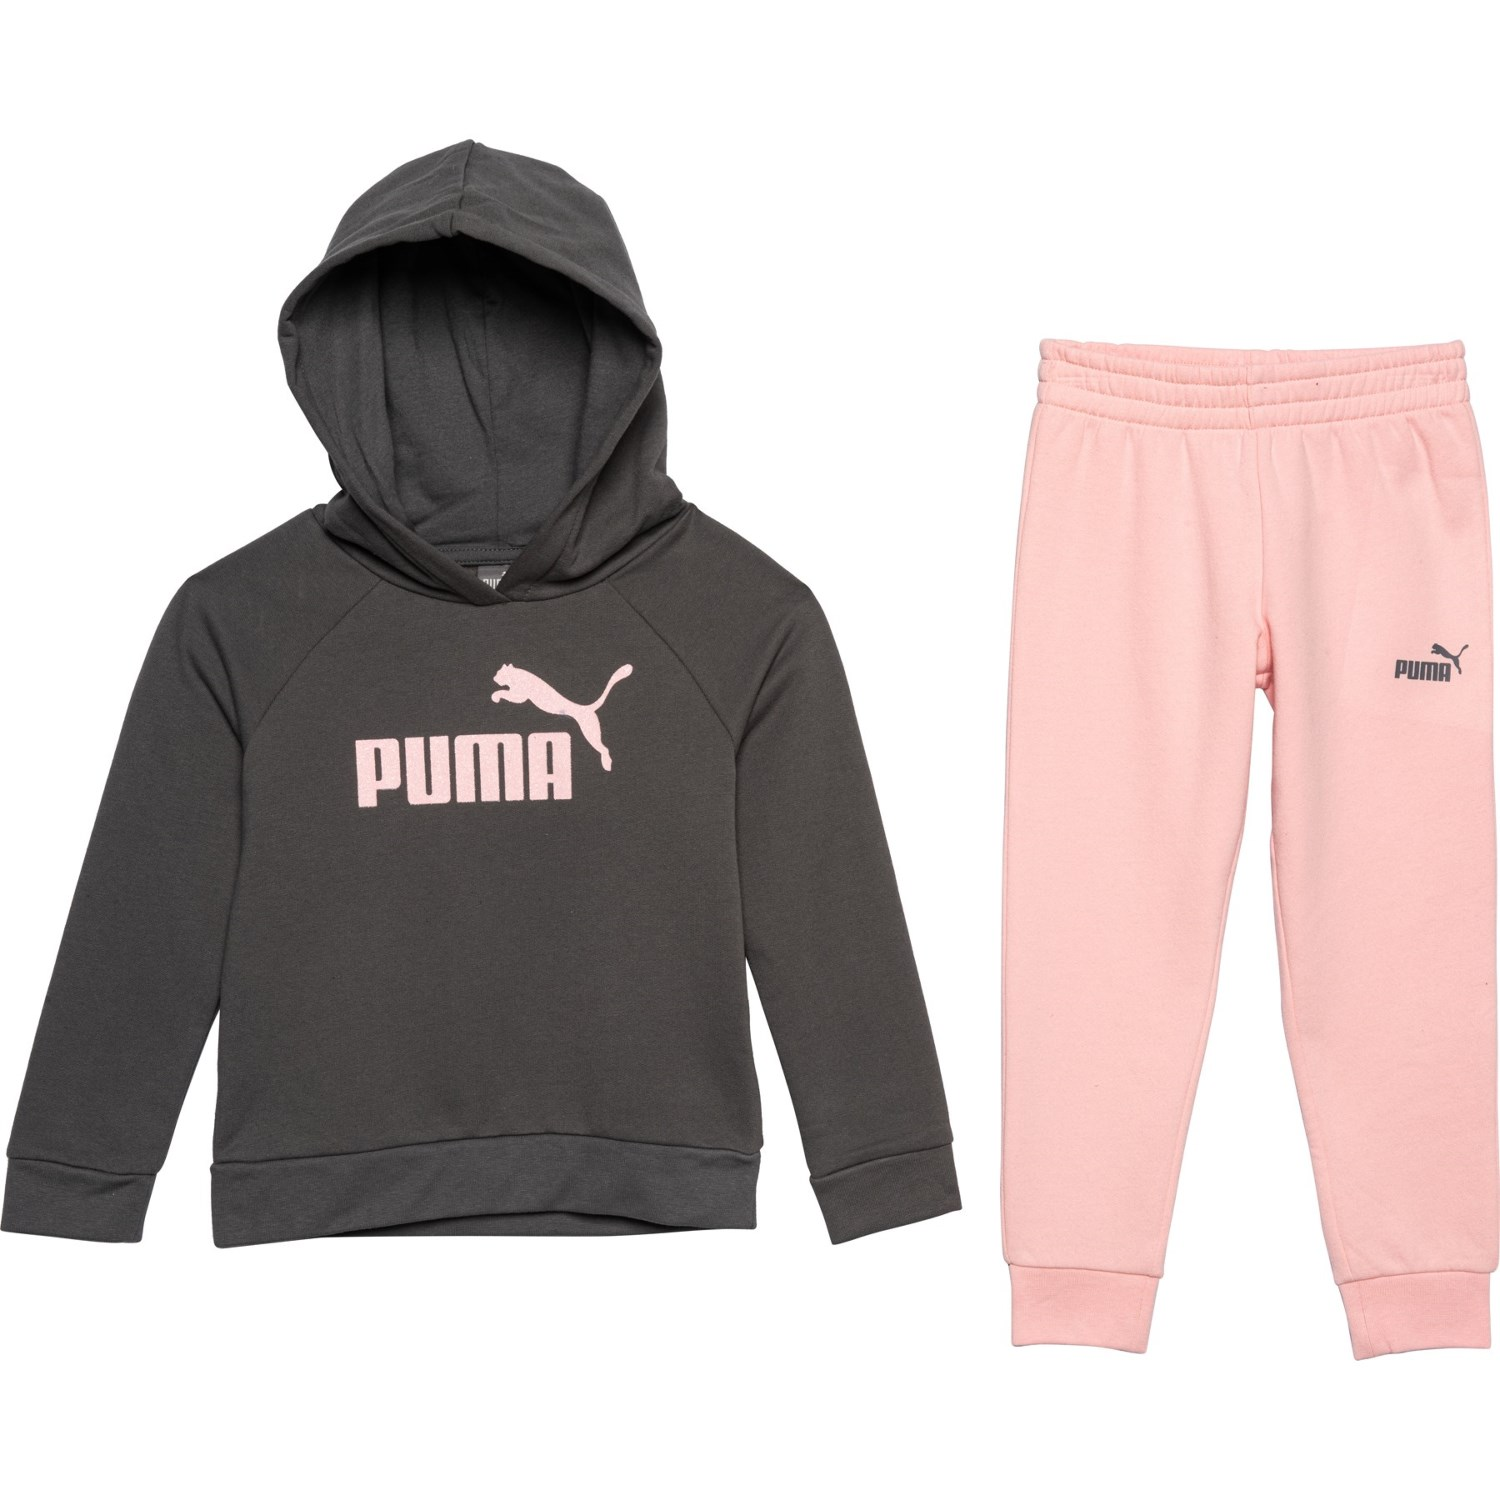 c0a2aa124916c Puma Fleece Hoodie and Joggers Set (For Little Girls) - Save 40%